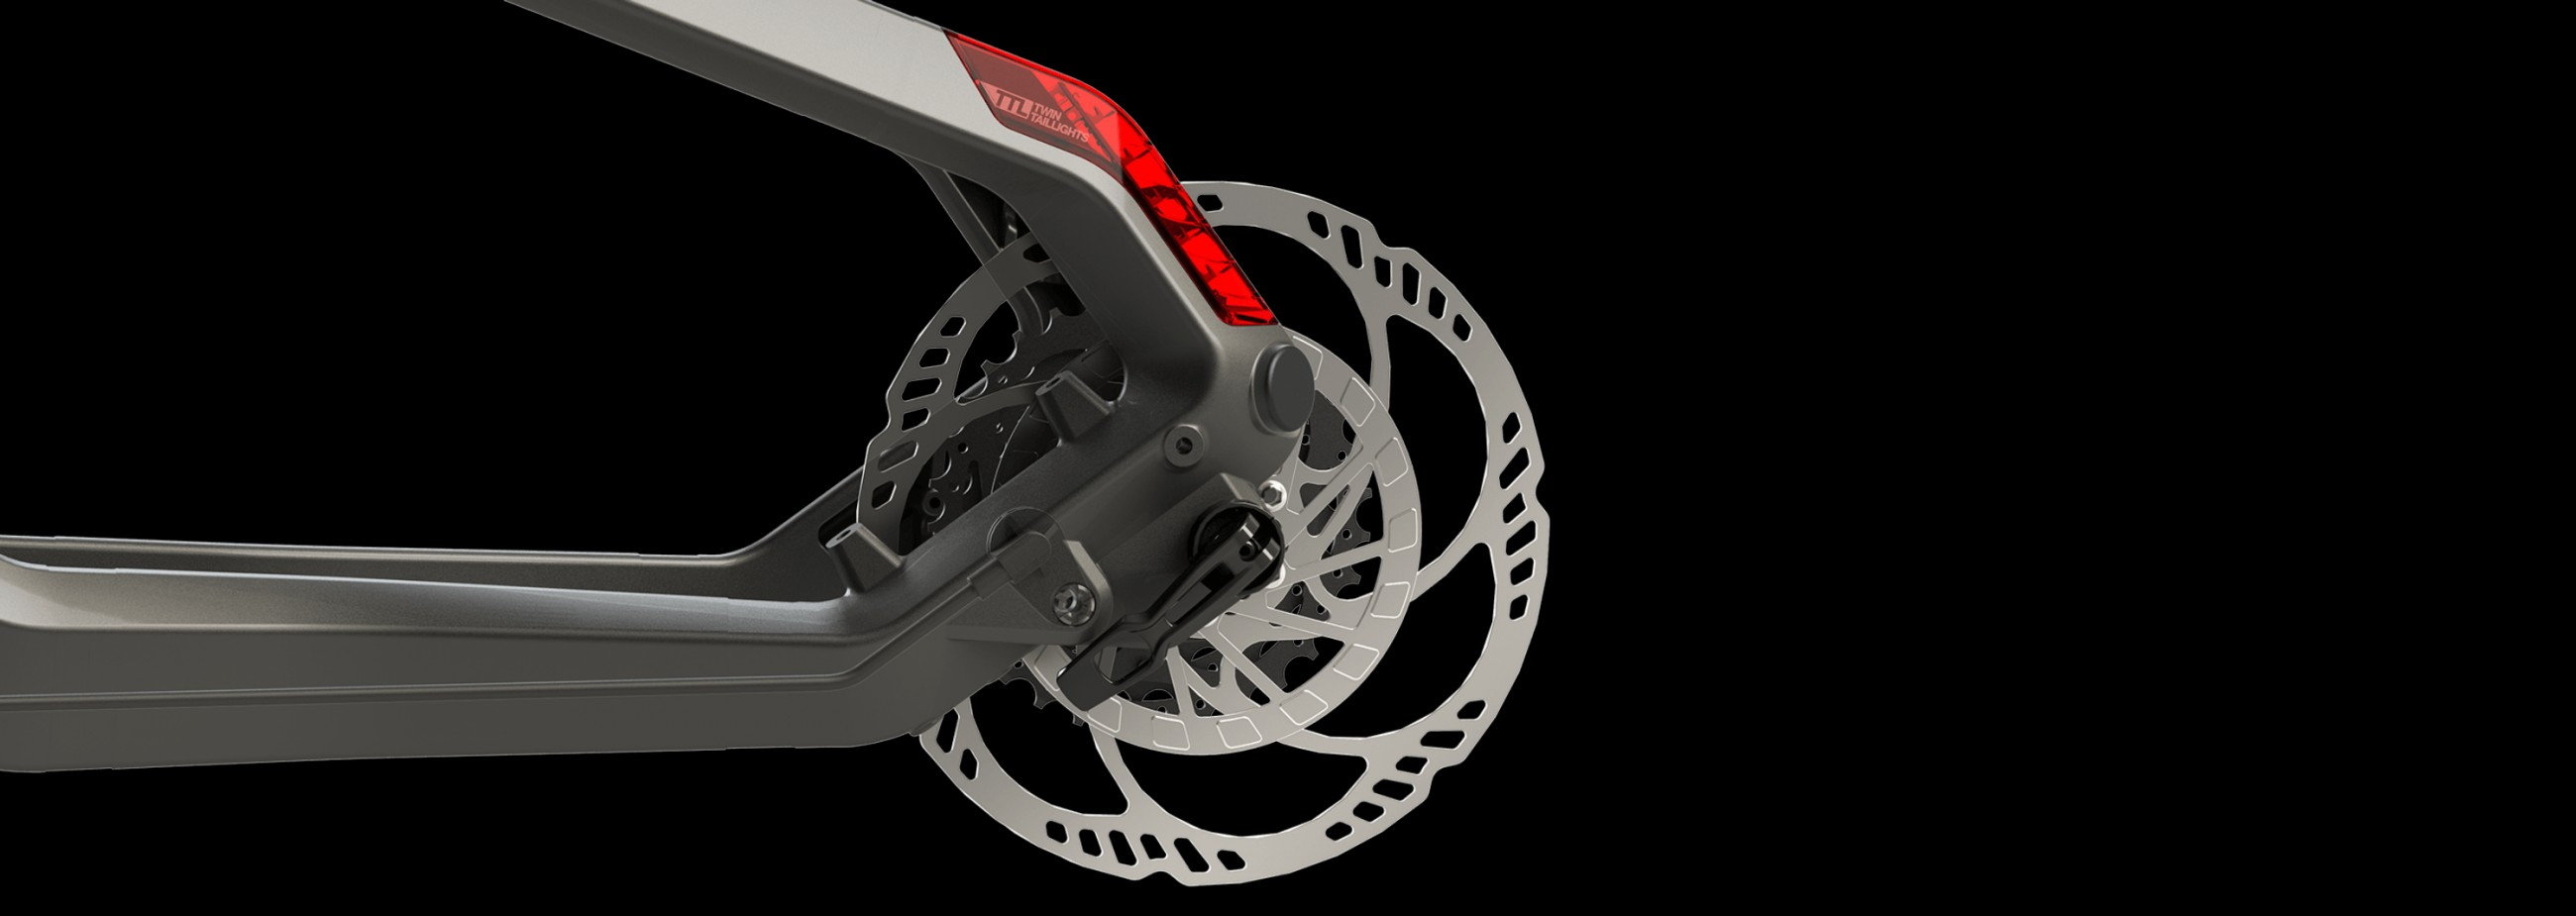 The Haibike speed sensor disc